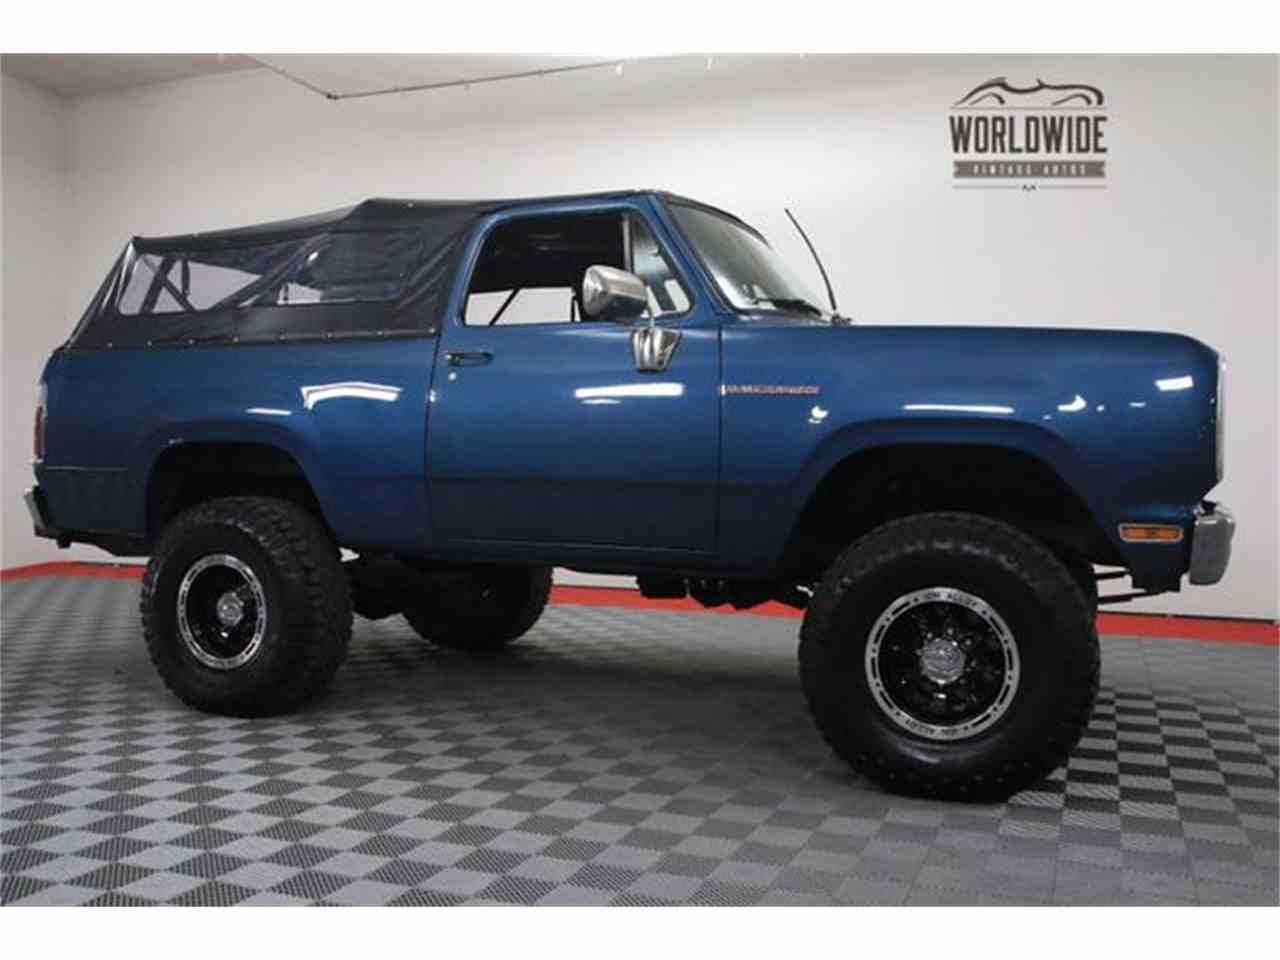 wd dodge auto in cars for pinterest ramcharger abnrml sale nice clean and very